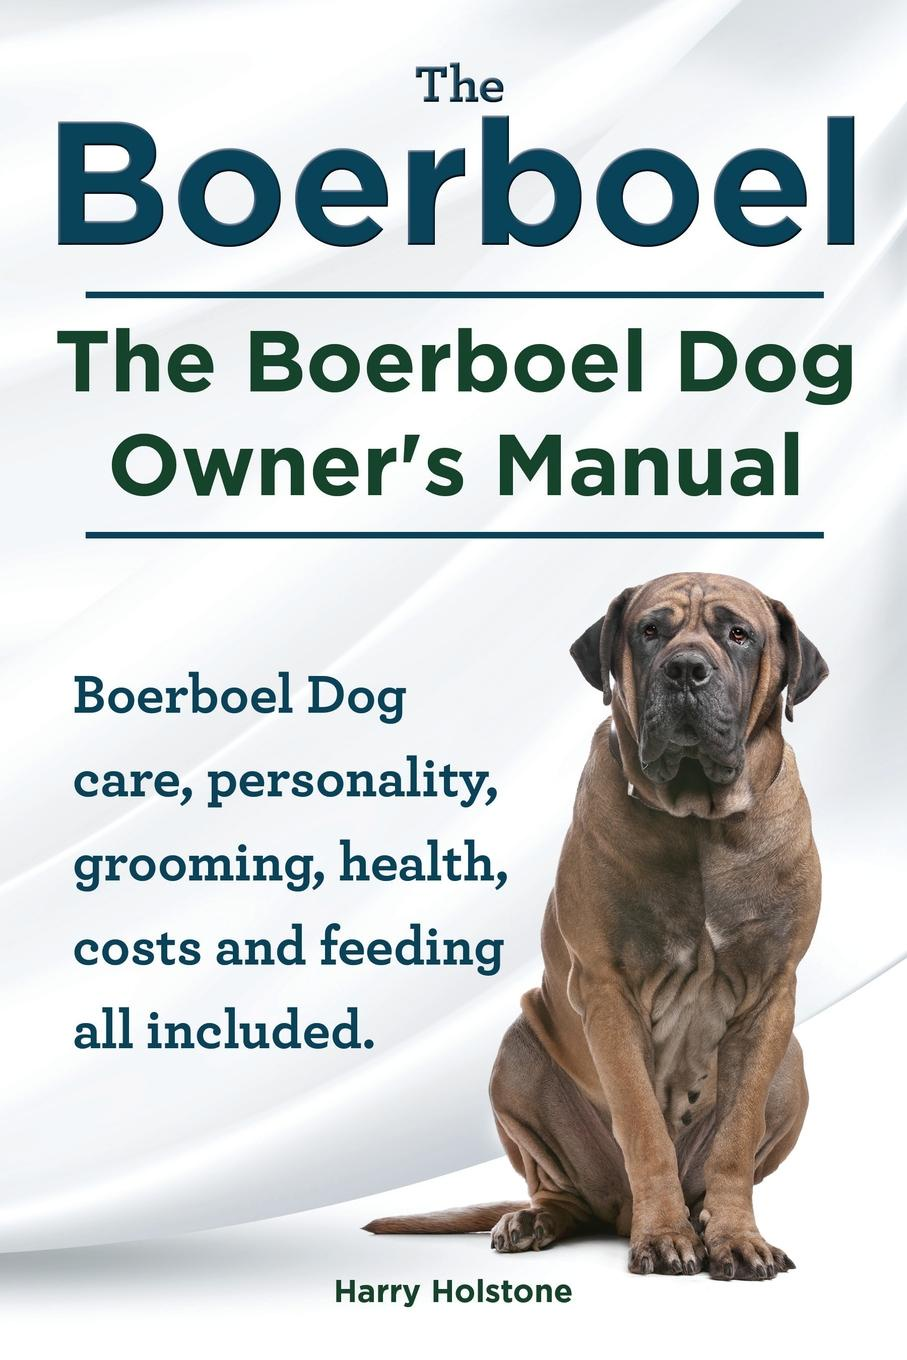 Фото - Harry Holstone Boerboel. the Boerboel Dog Owner's Manual. Boerboel Dog Care, Personality, Grooming, Health, Costs and Feeding All Included. harry holstone boerboel the boerboel dog owner s manual boerboel dog care personality grooming health costs and feeding all included